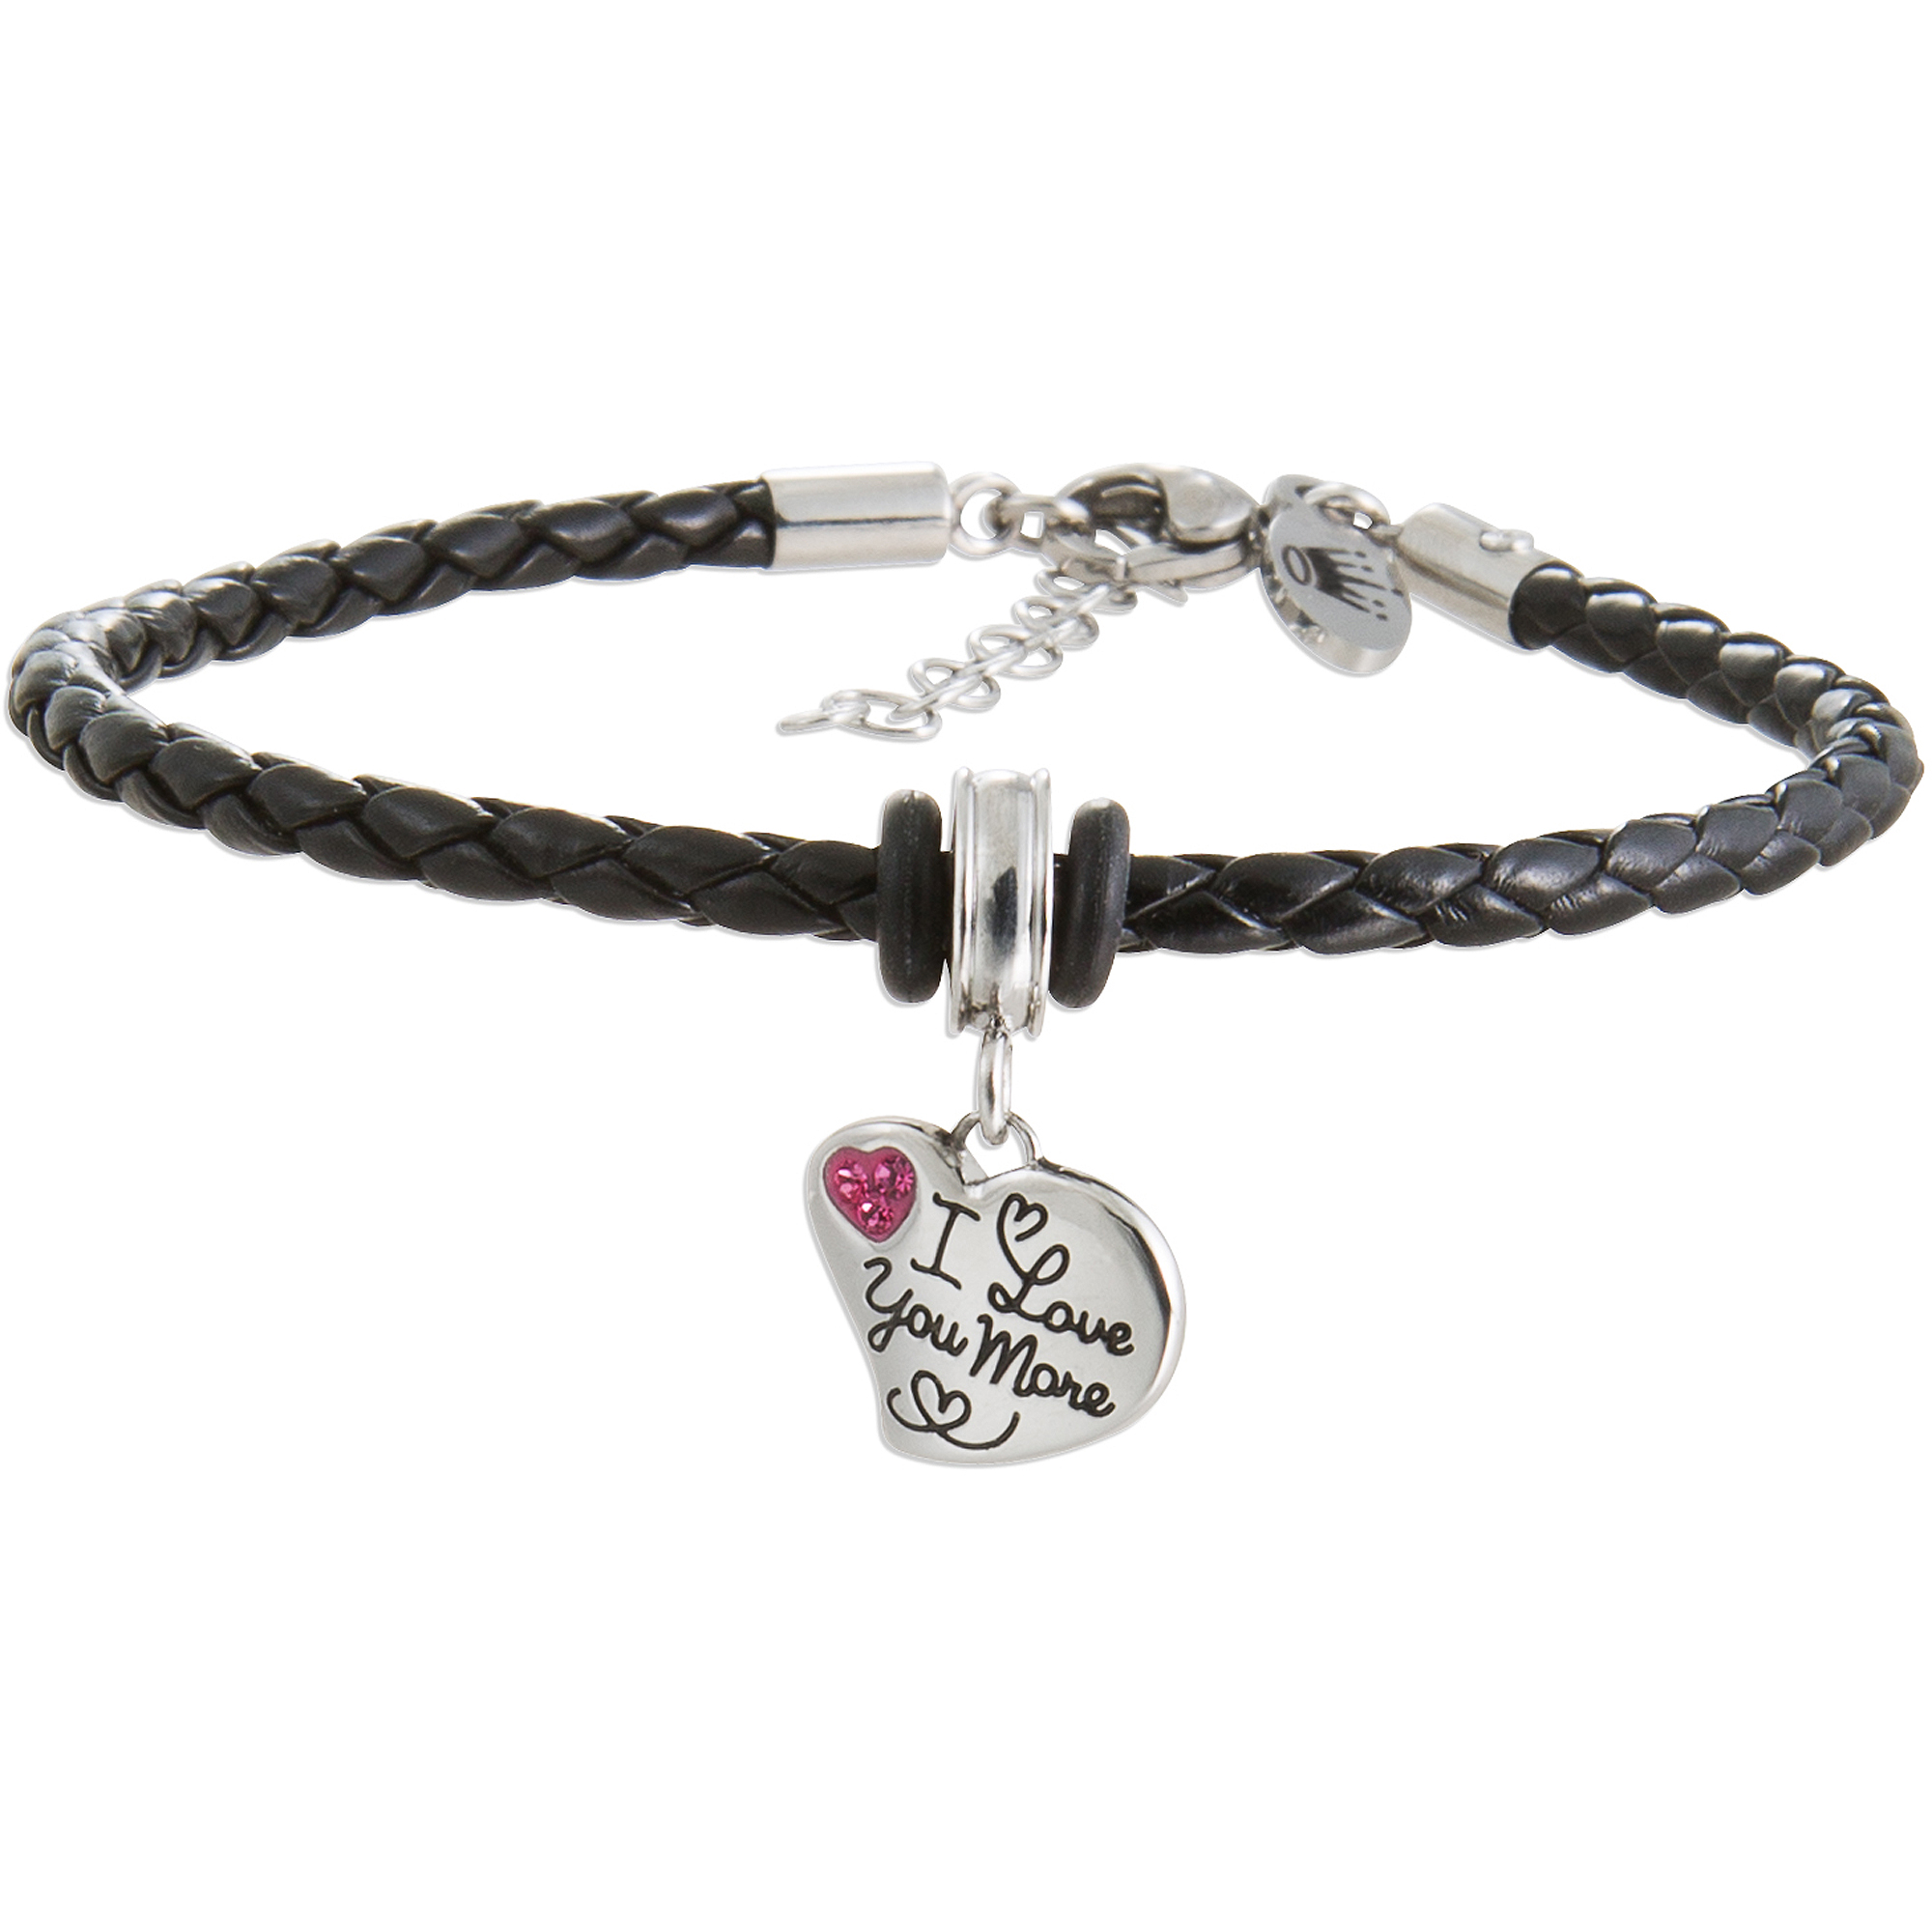 "Connections from Hallmark Pink Crystal Stainless Steel ""I love you more"" Heart Charm Black Braided Bracelet, 7"" with 1-1/2"" Extender"